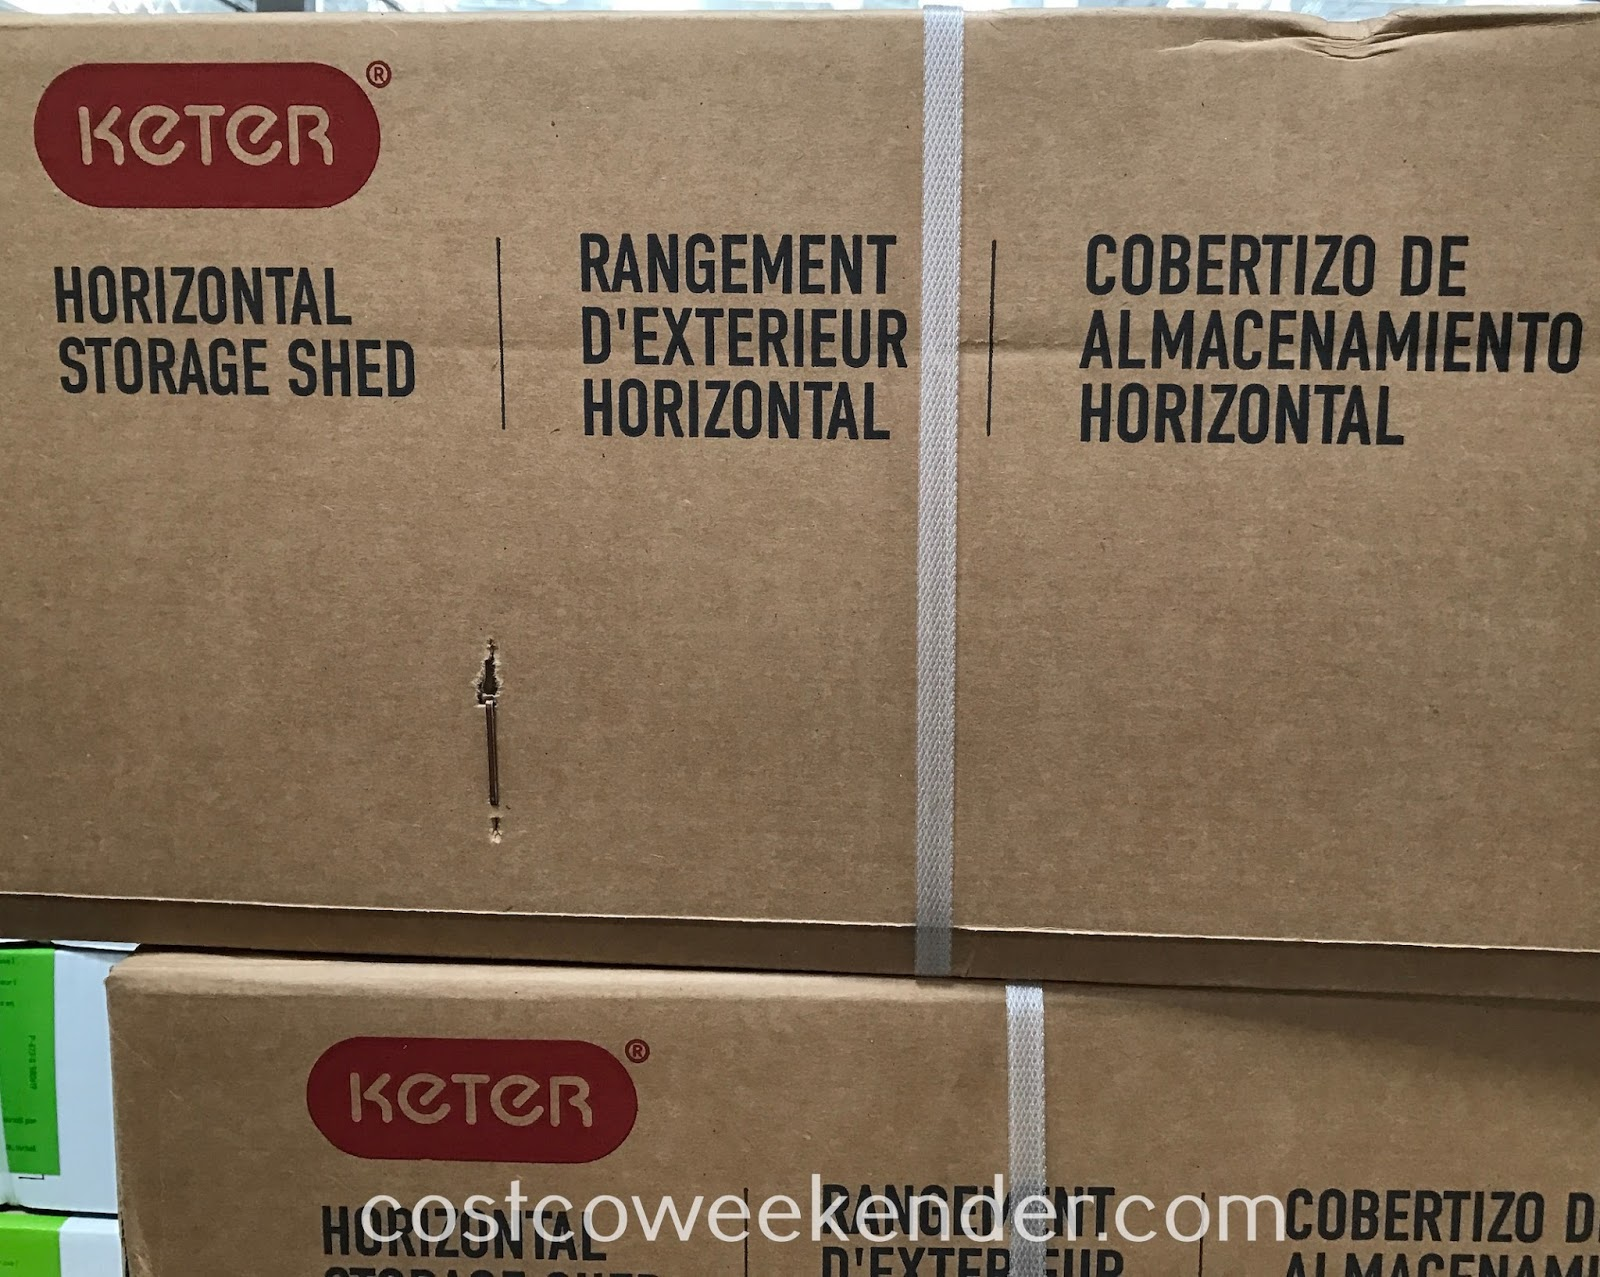 Costco 1031617 - Keter Horizontal Resin Storage Shed: Quick and easy way to add storage to any home